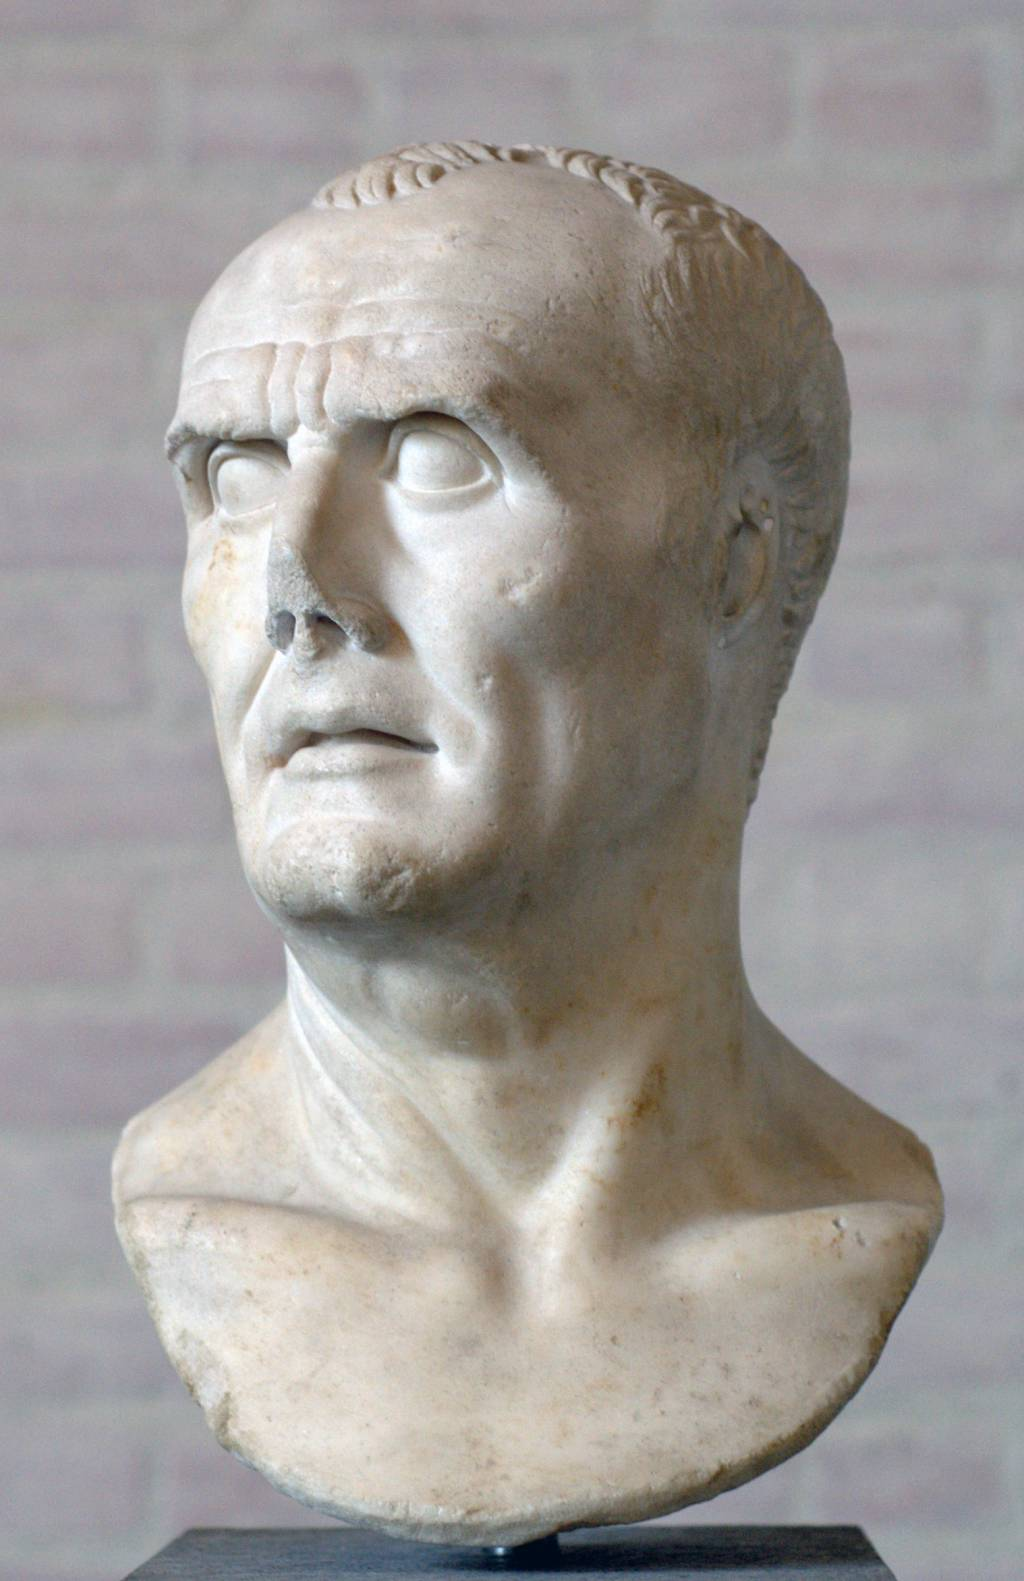 Museum acquires ancient Roman bust - The Blade